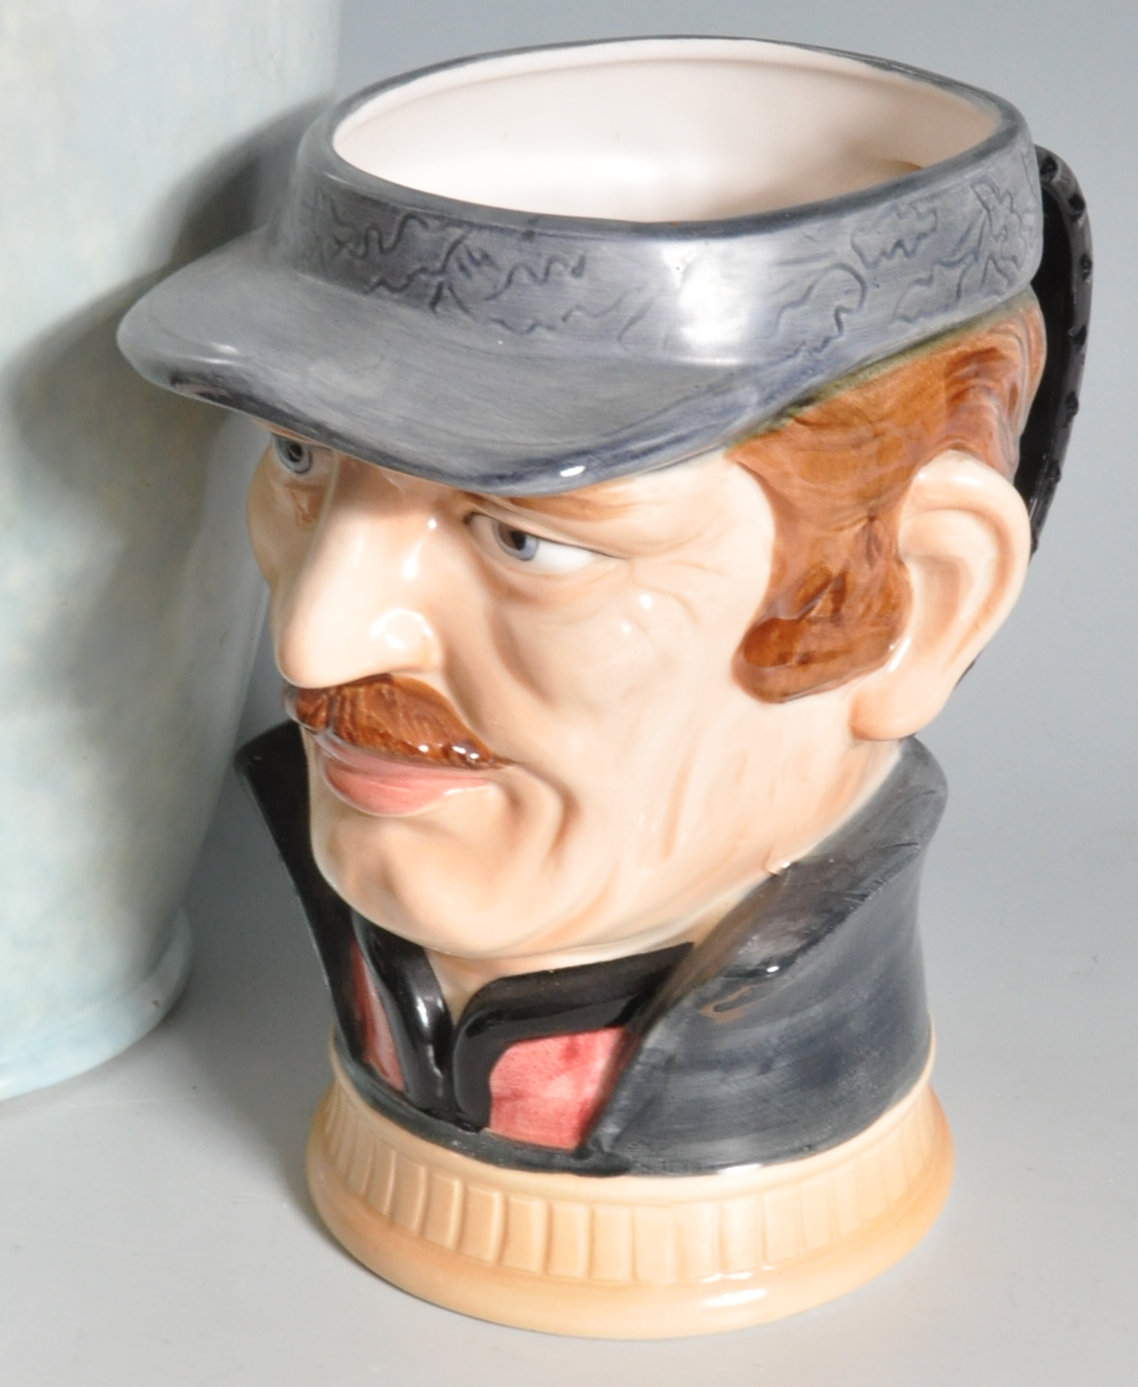 COLLECTION OF VINTAGE 20TH CENTURY CERAMICS - Image 8 of 10